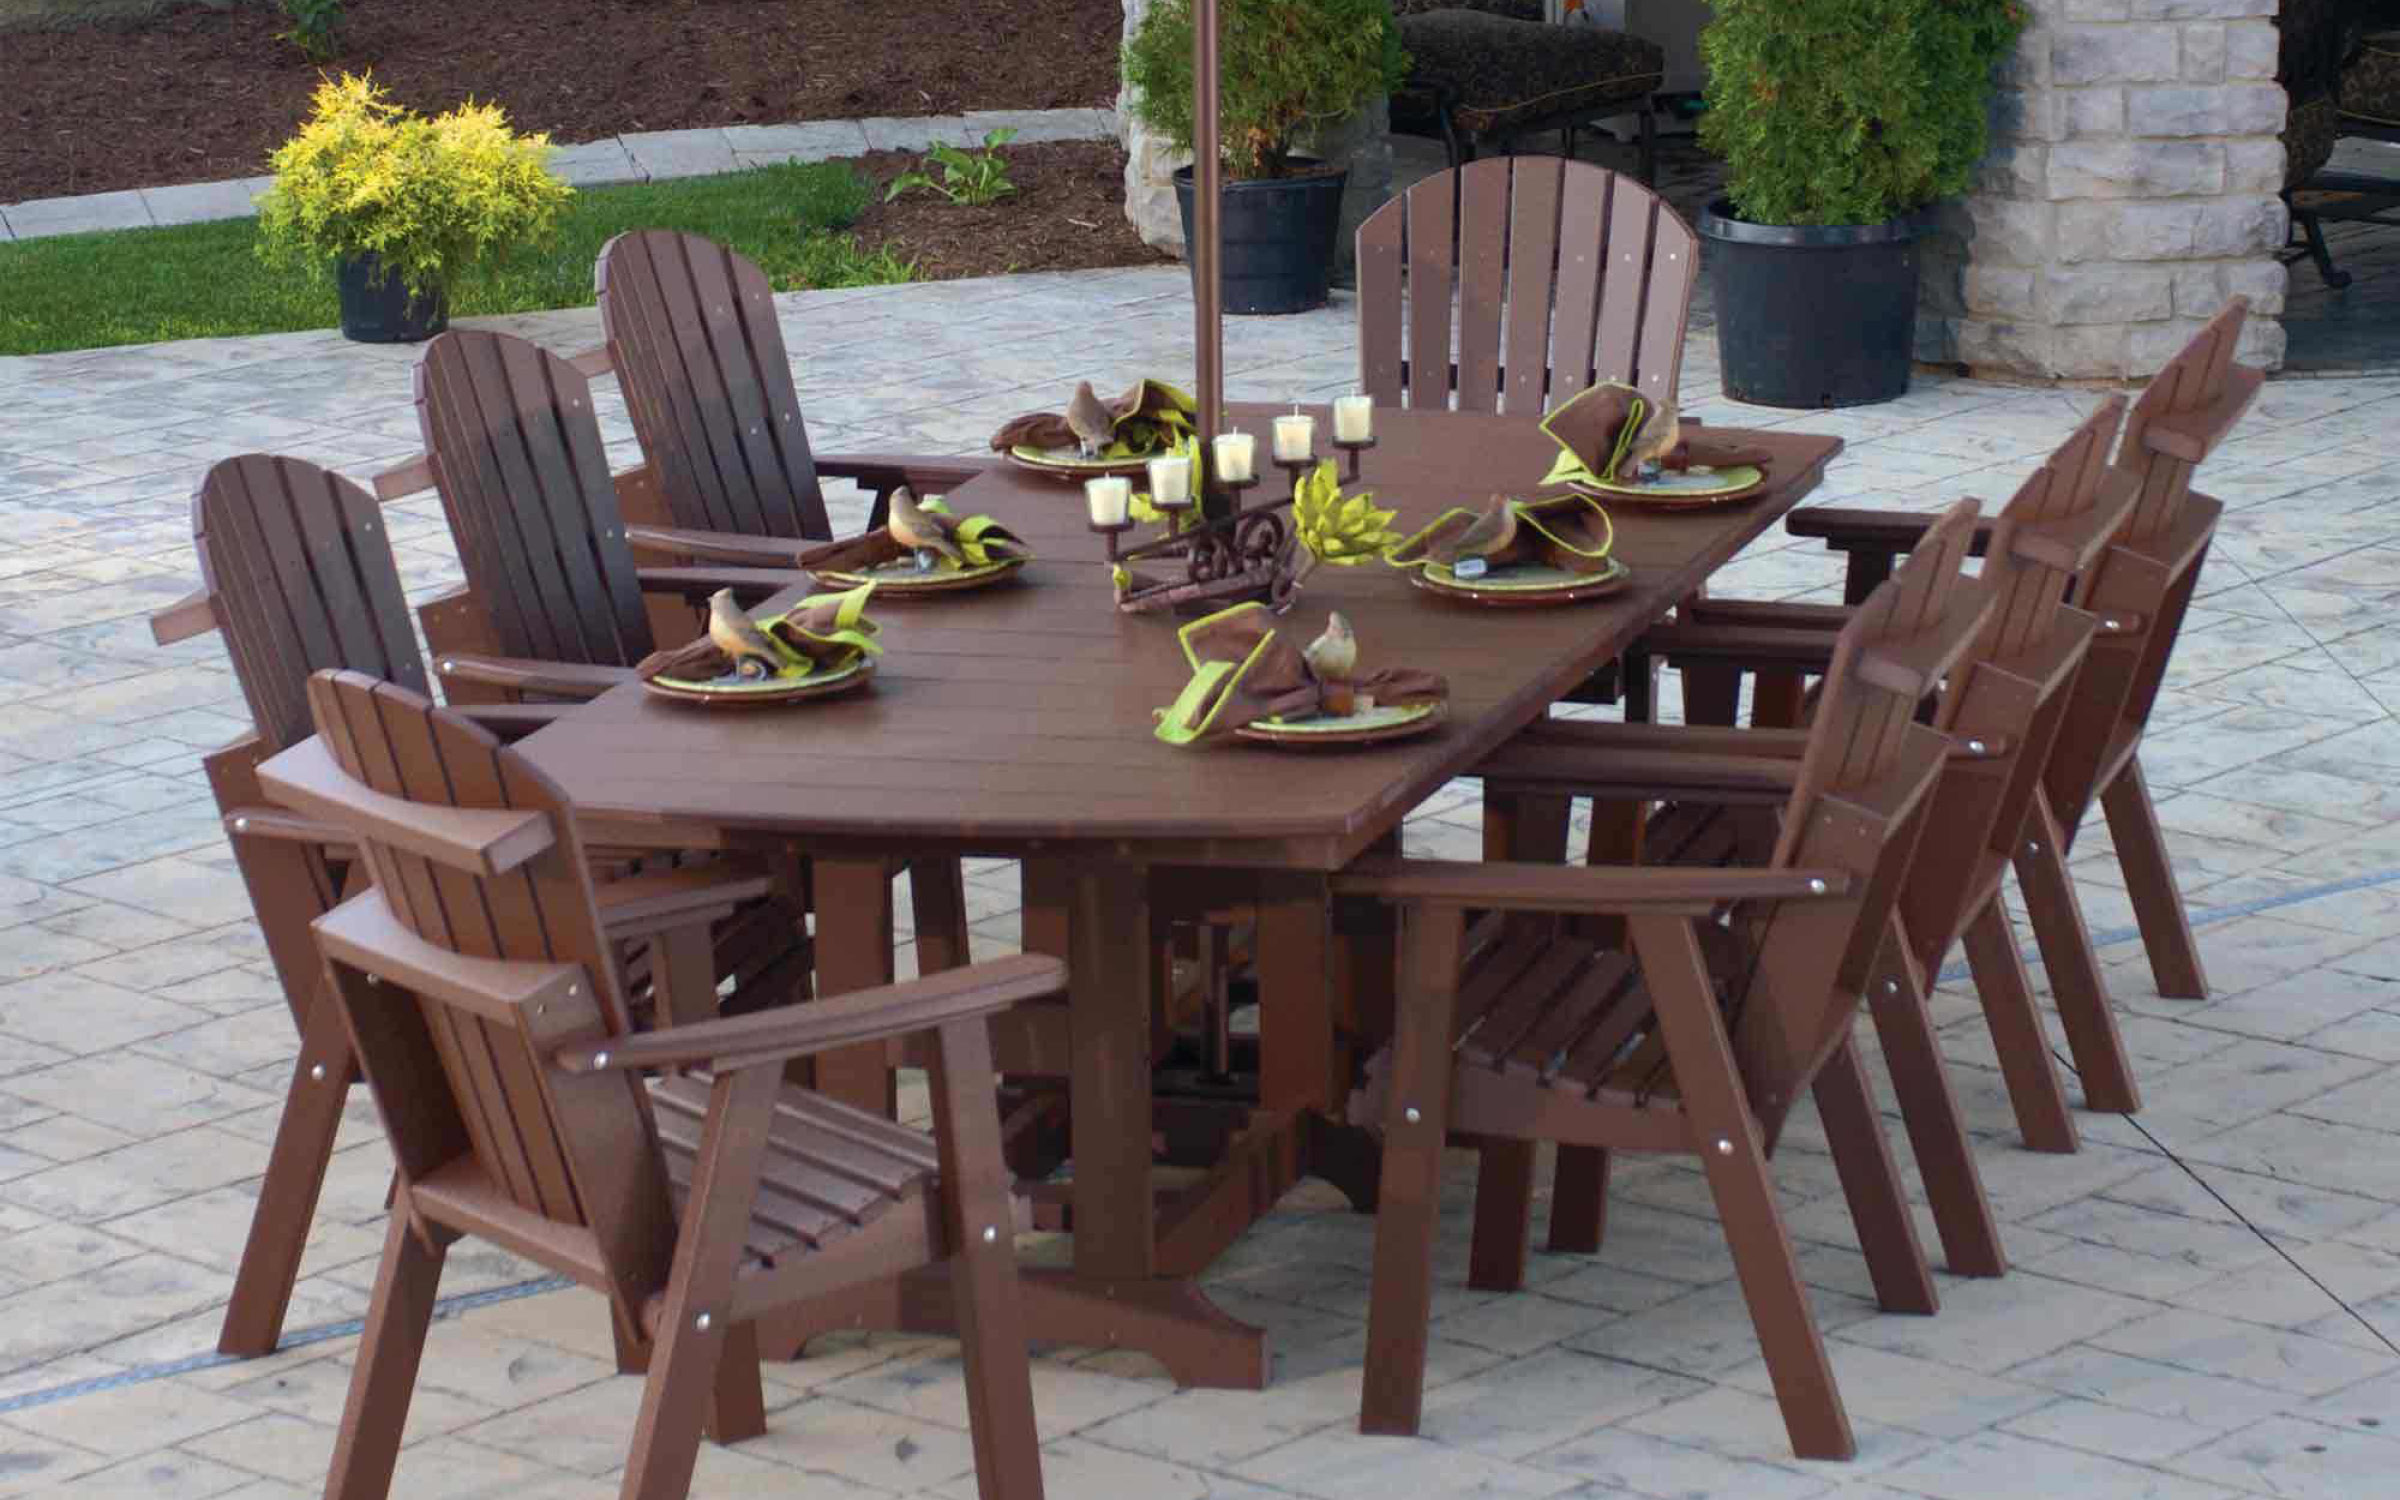 Outdoor Dining Room Set Furniture | iFurnish, Frisco, CO